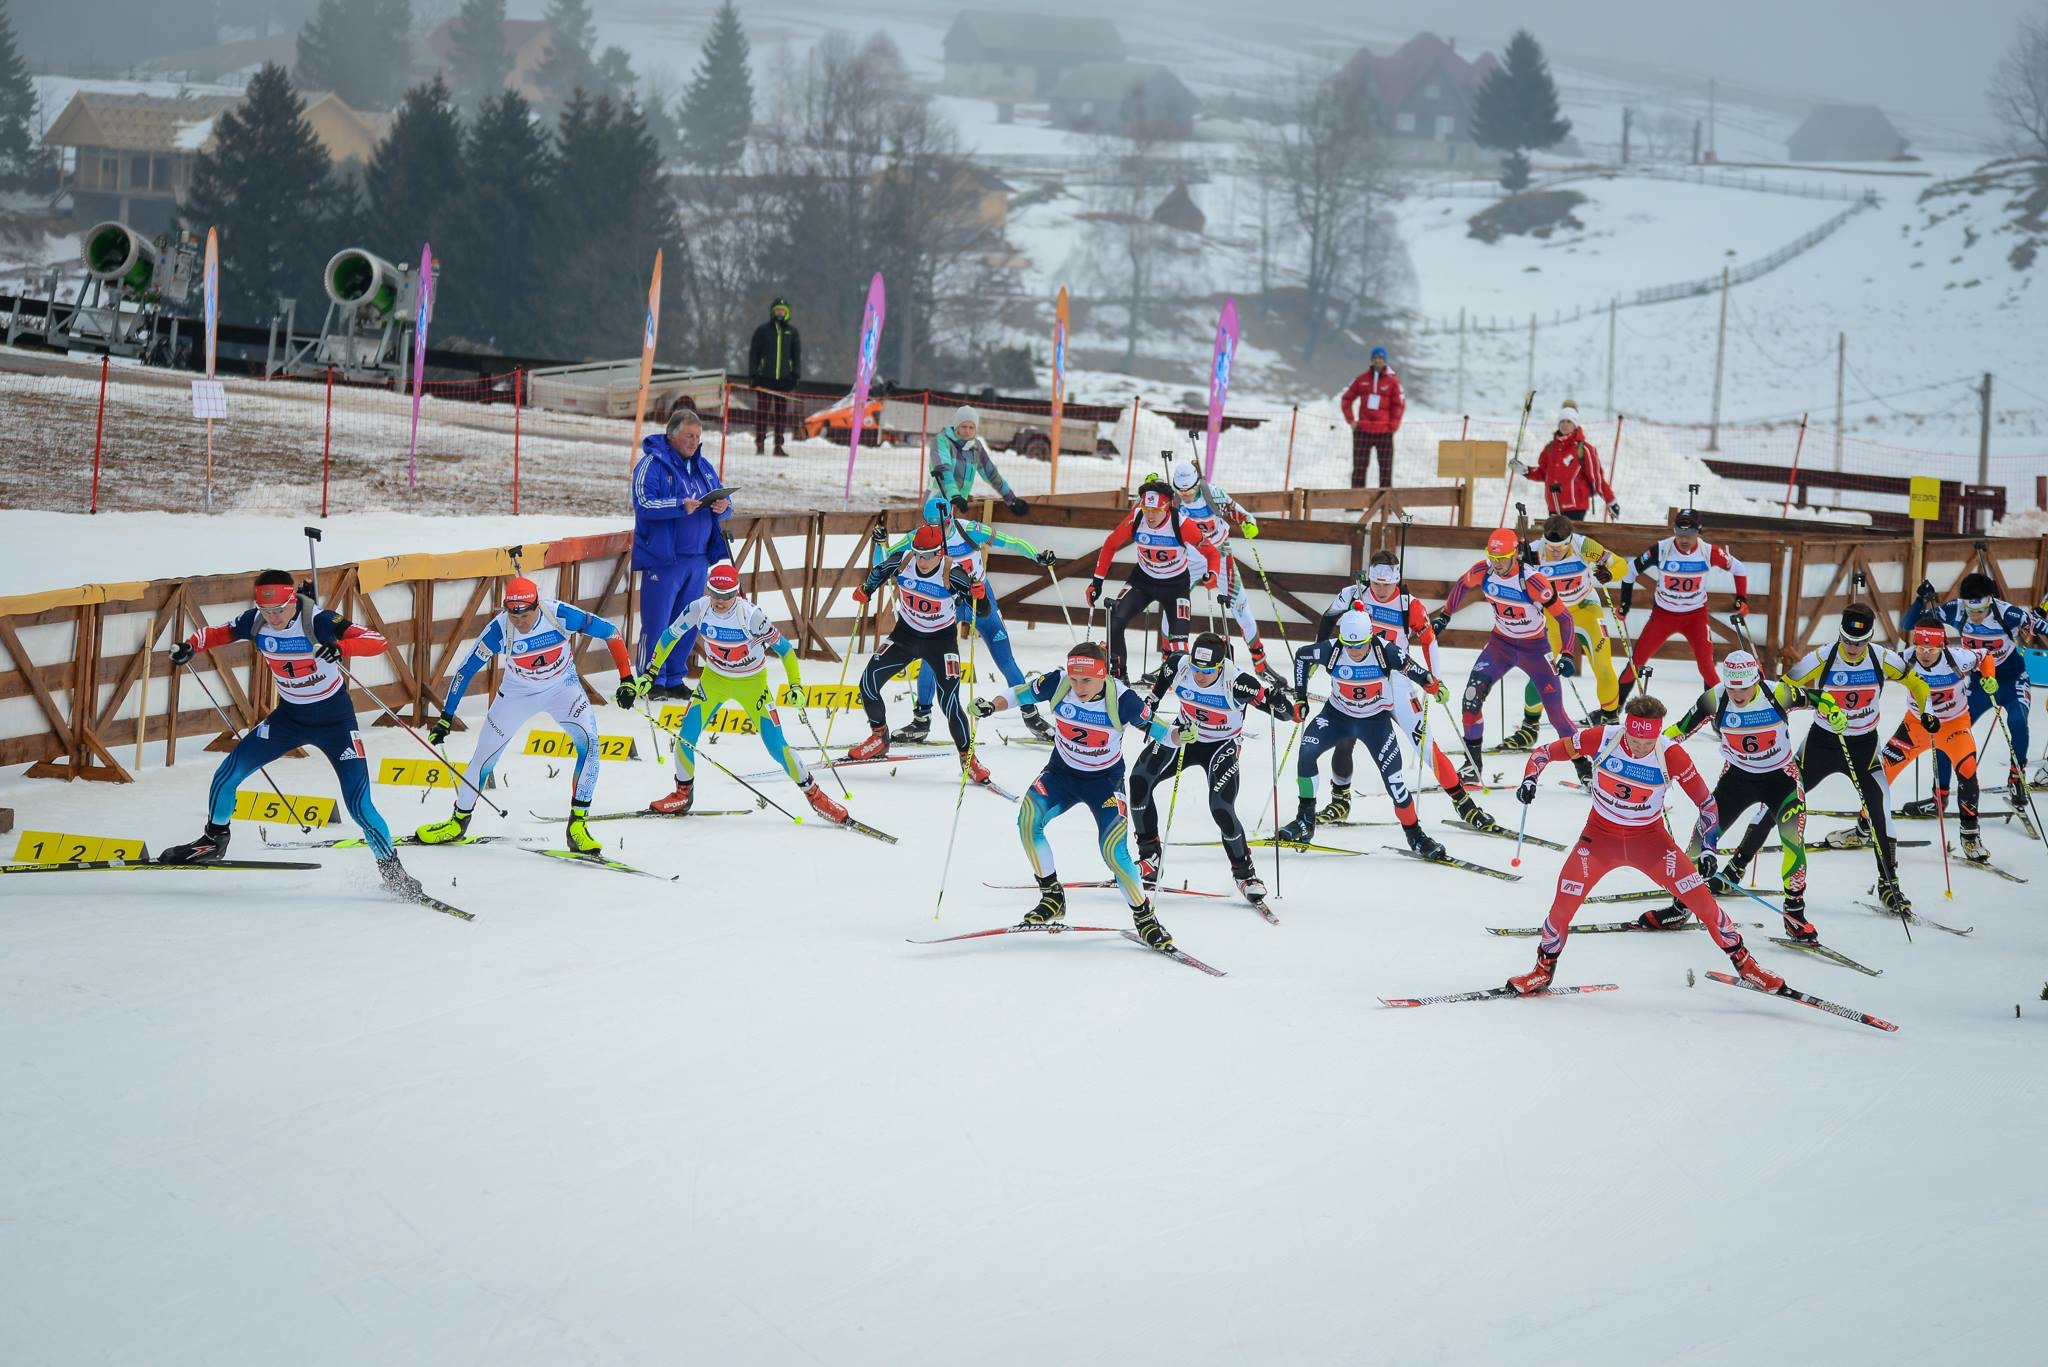 https://fasterskier.com/wp-content/blogs.dir/1/files/2016/02/Johnson-Sanchez-start-youth-relay.jpg